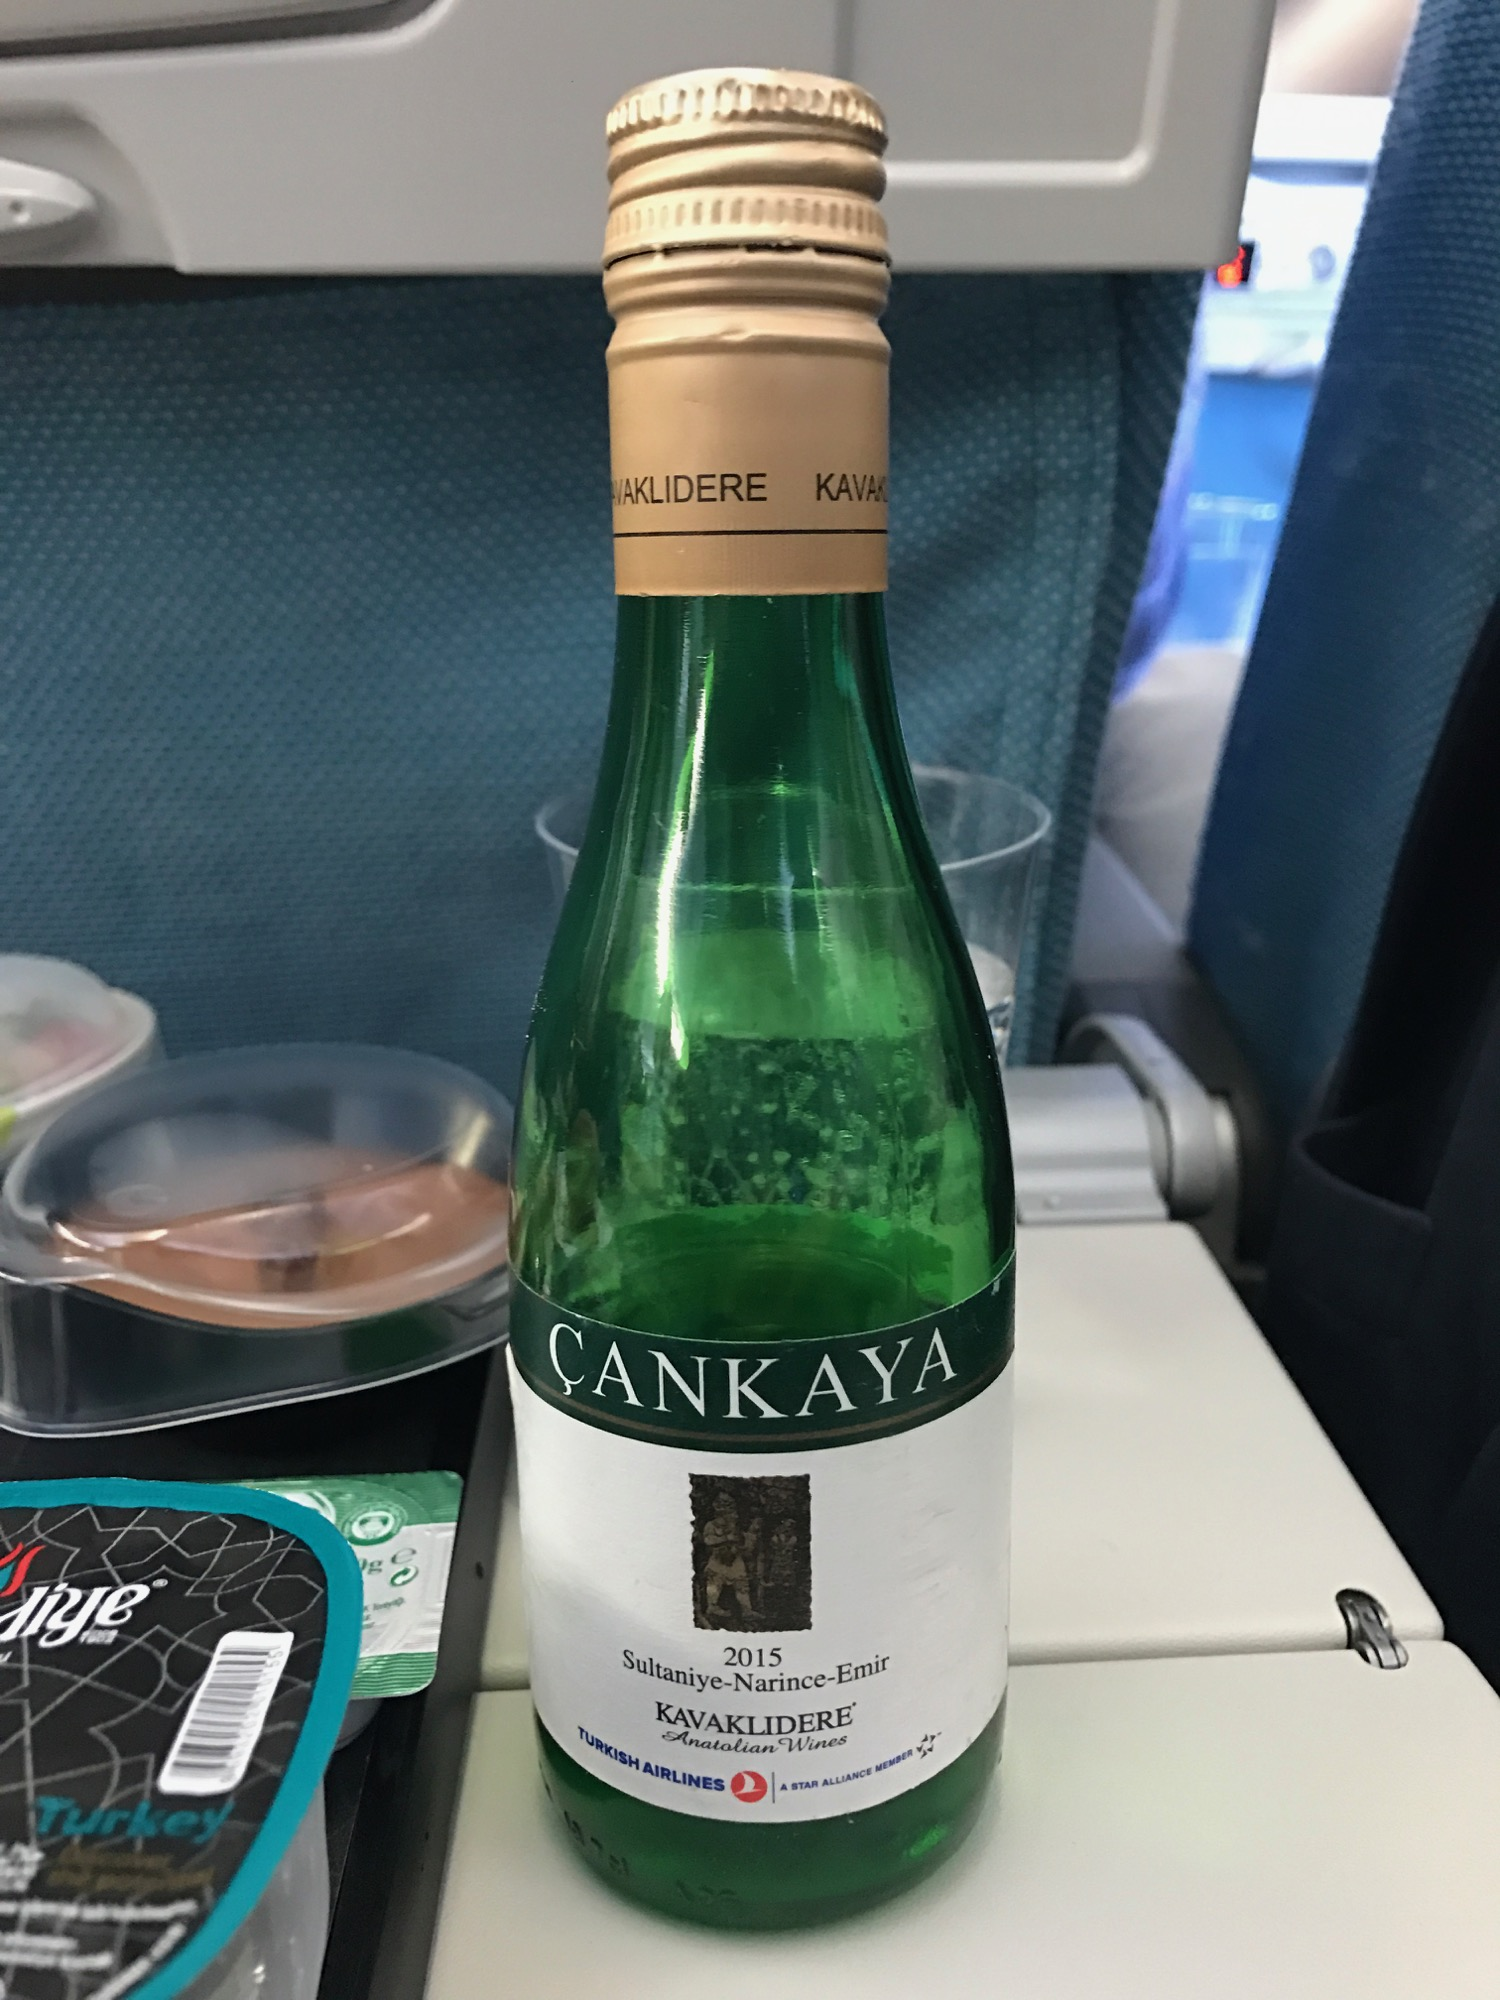 Turkish Airlines Economy Class Meals - 4